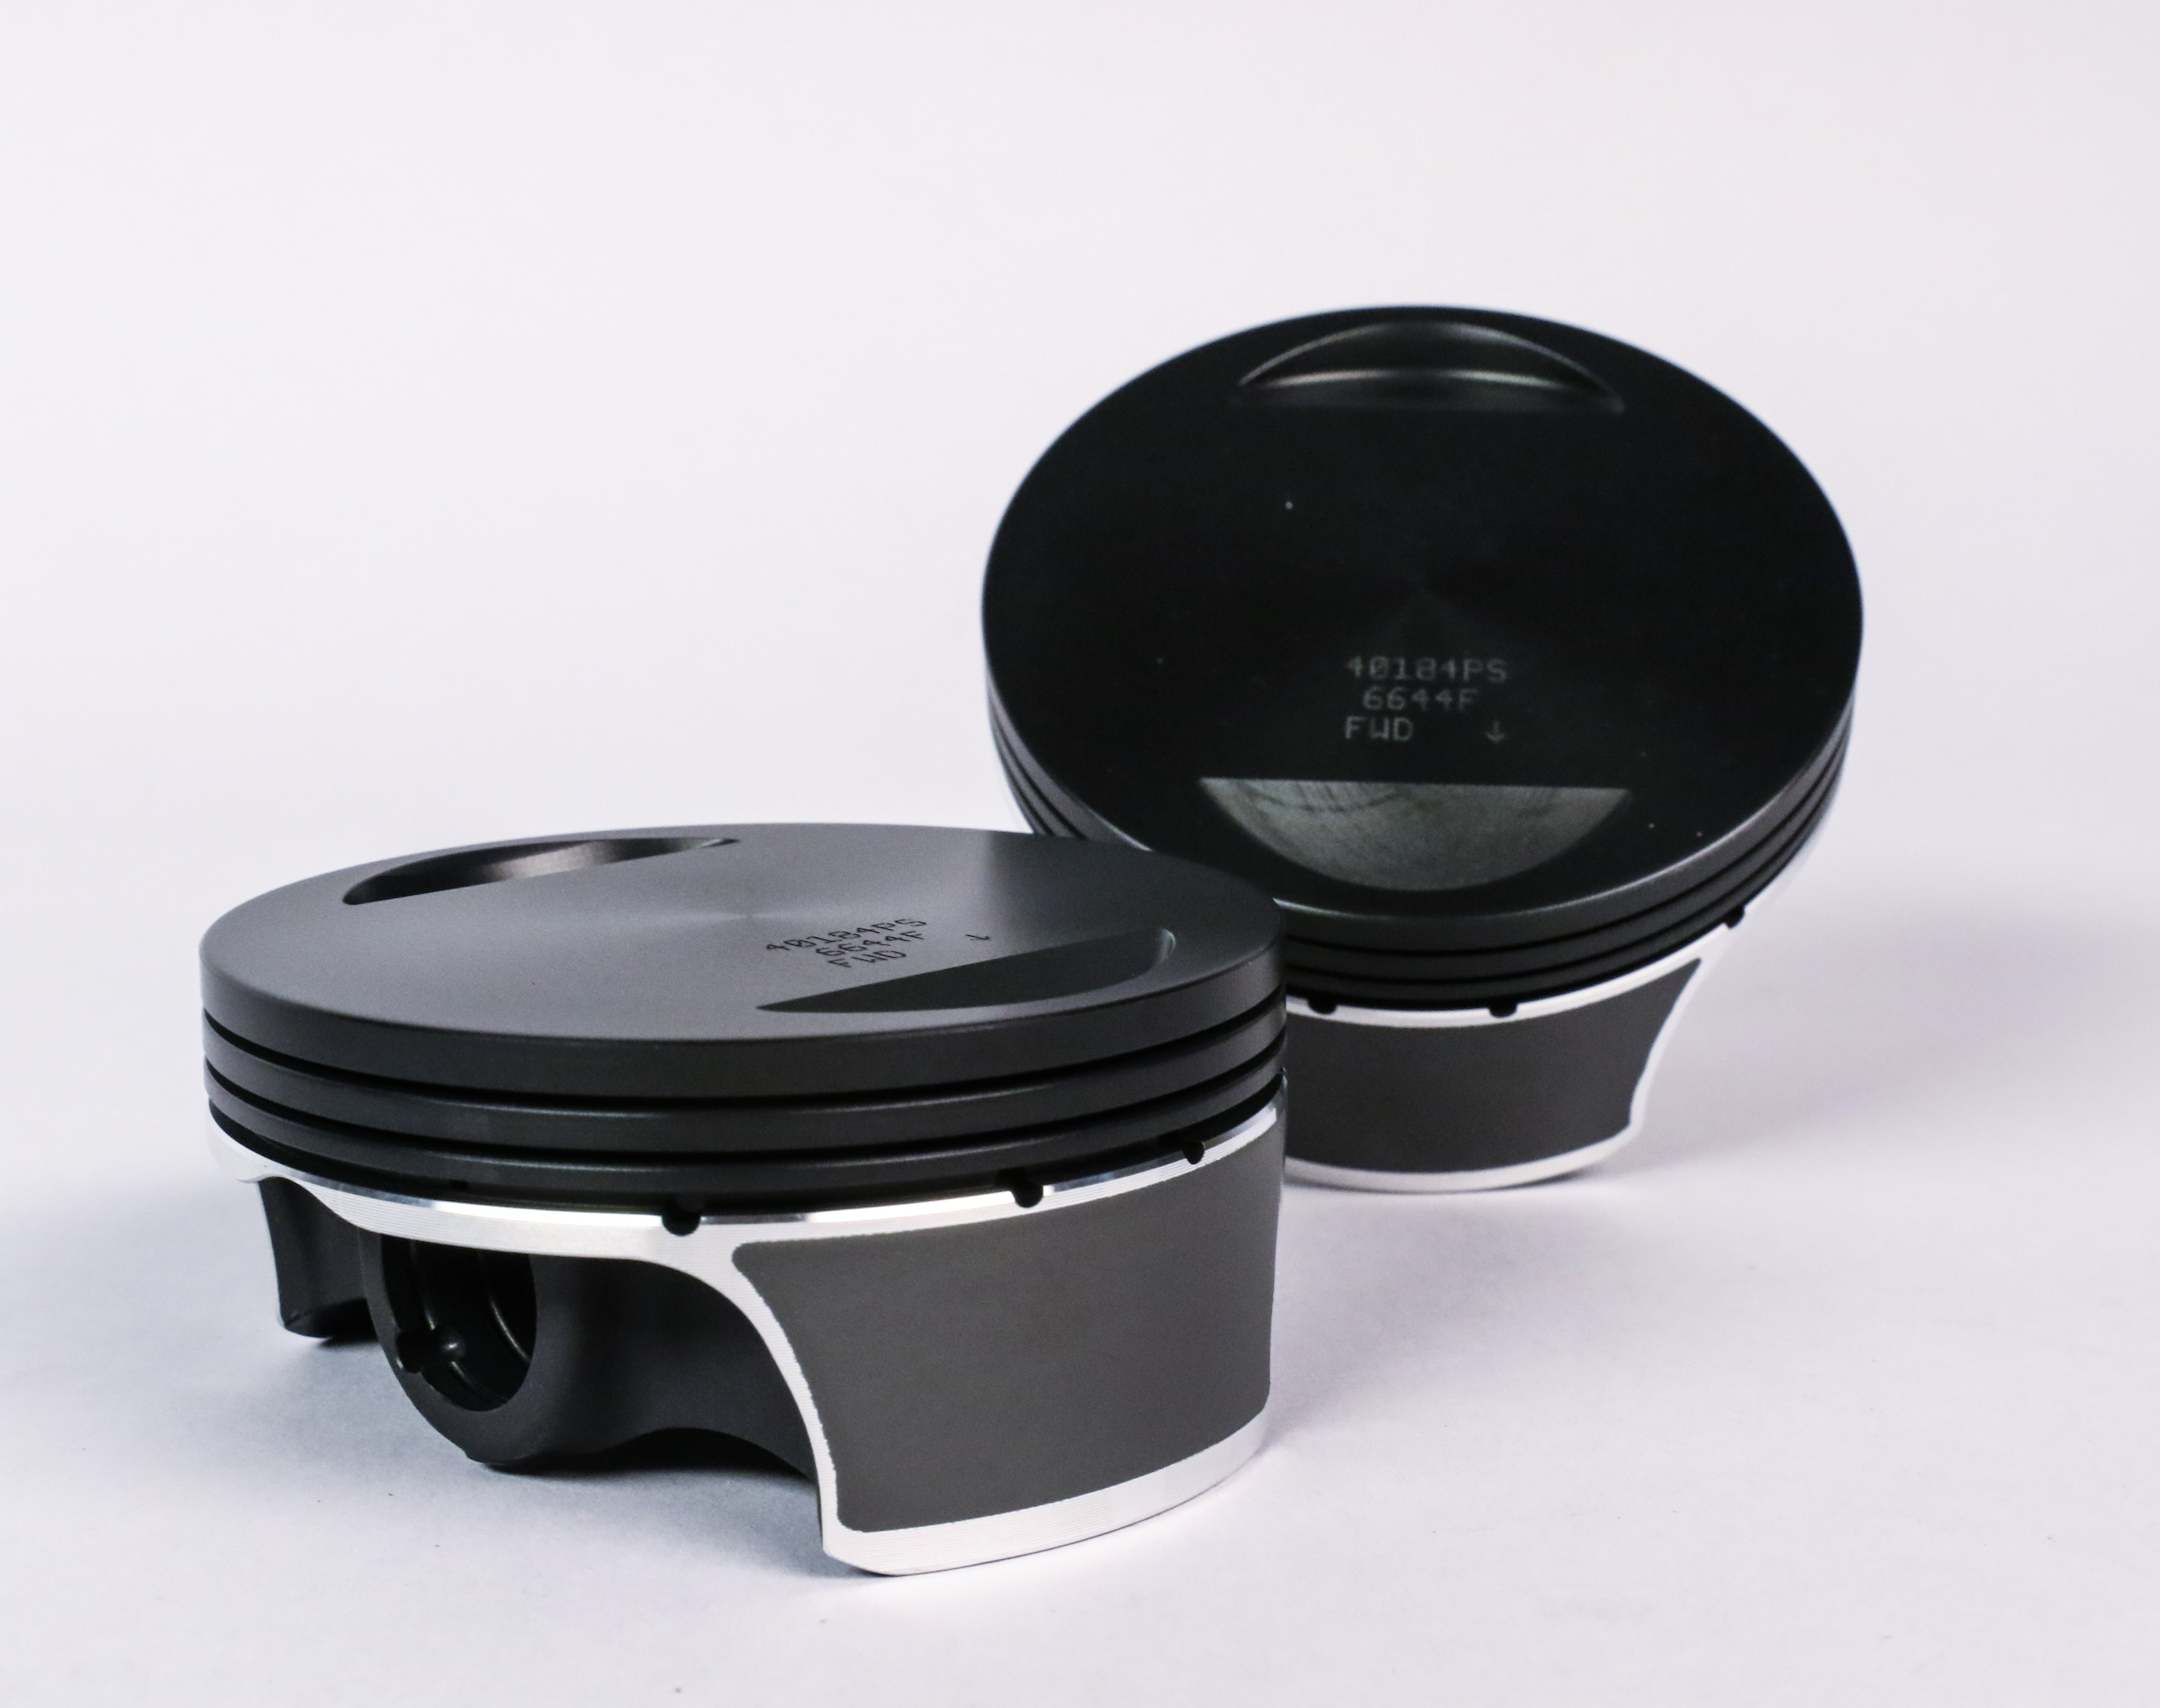 Pro X Powersports >> Wiseco's New Black Edition Harley Davidson Pistons with Industry First Coatings